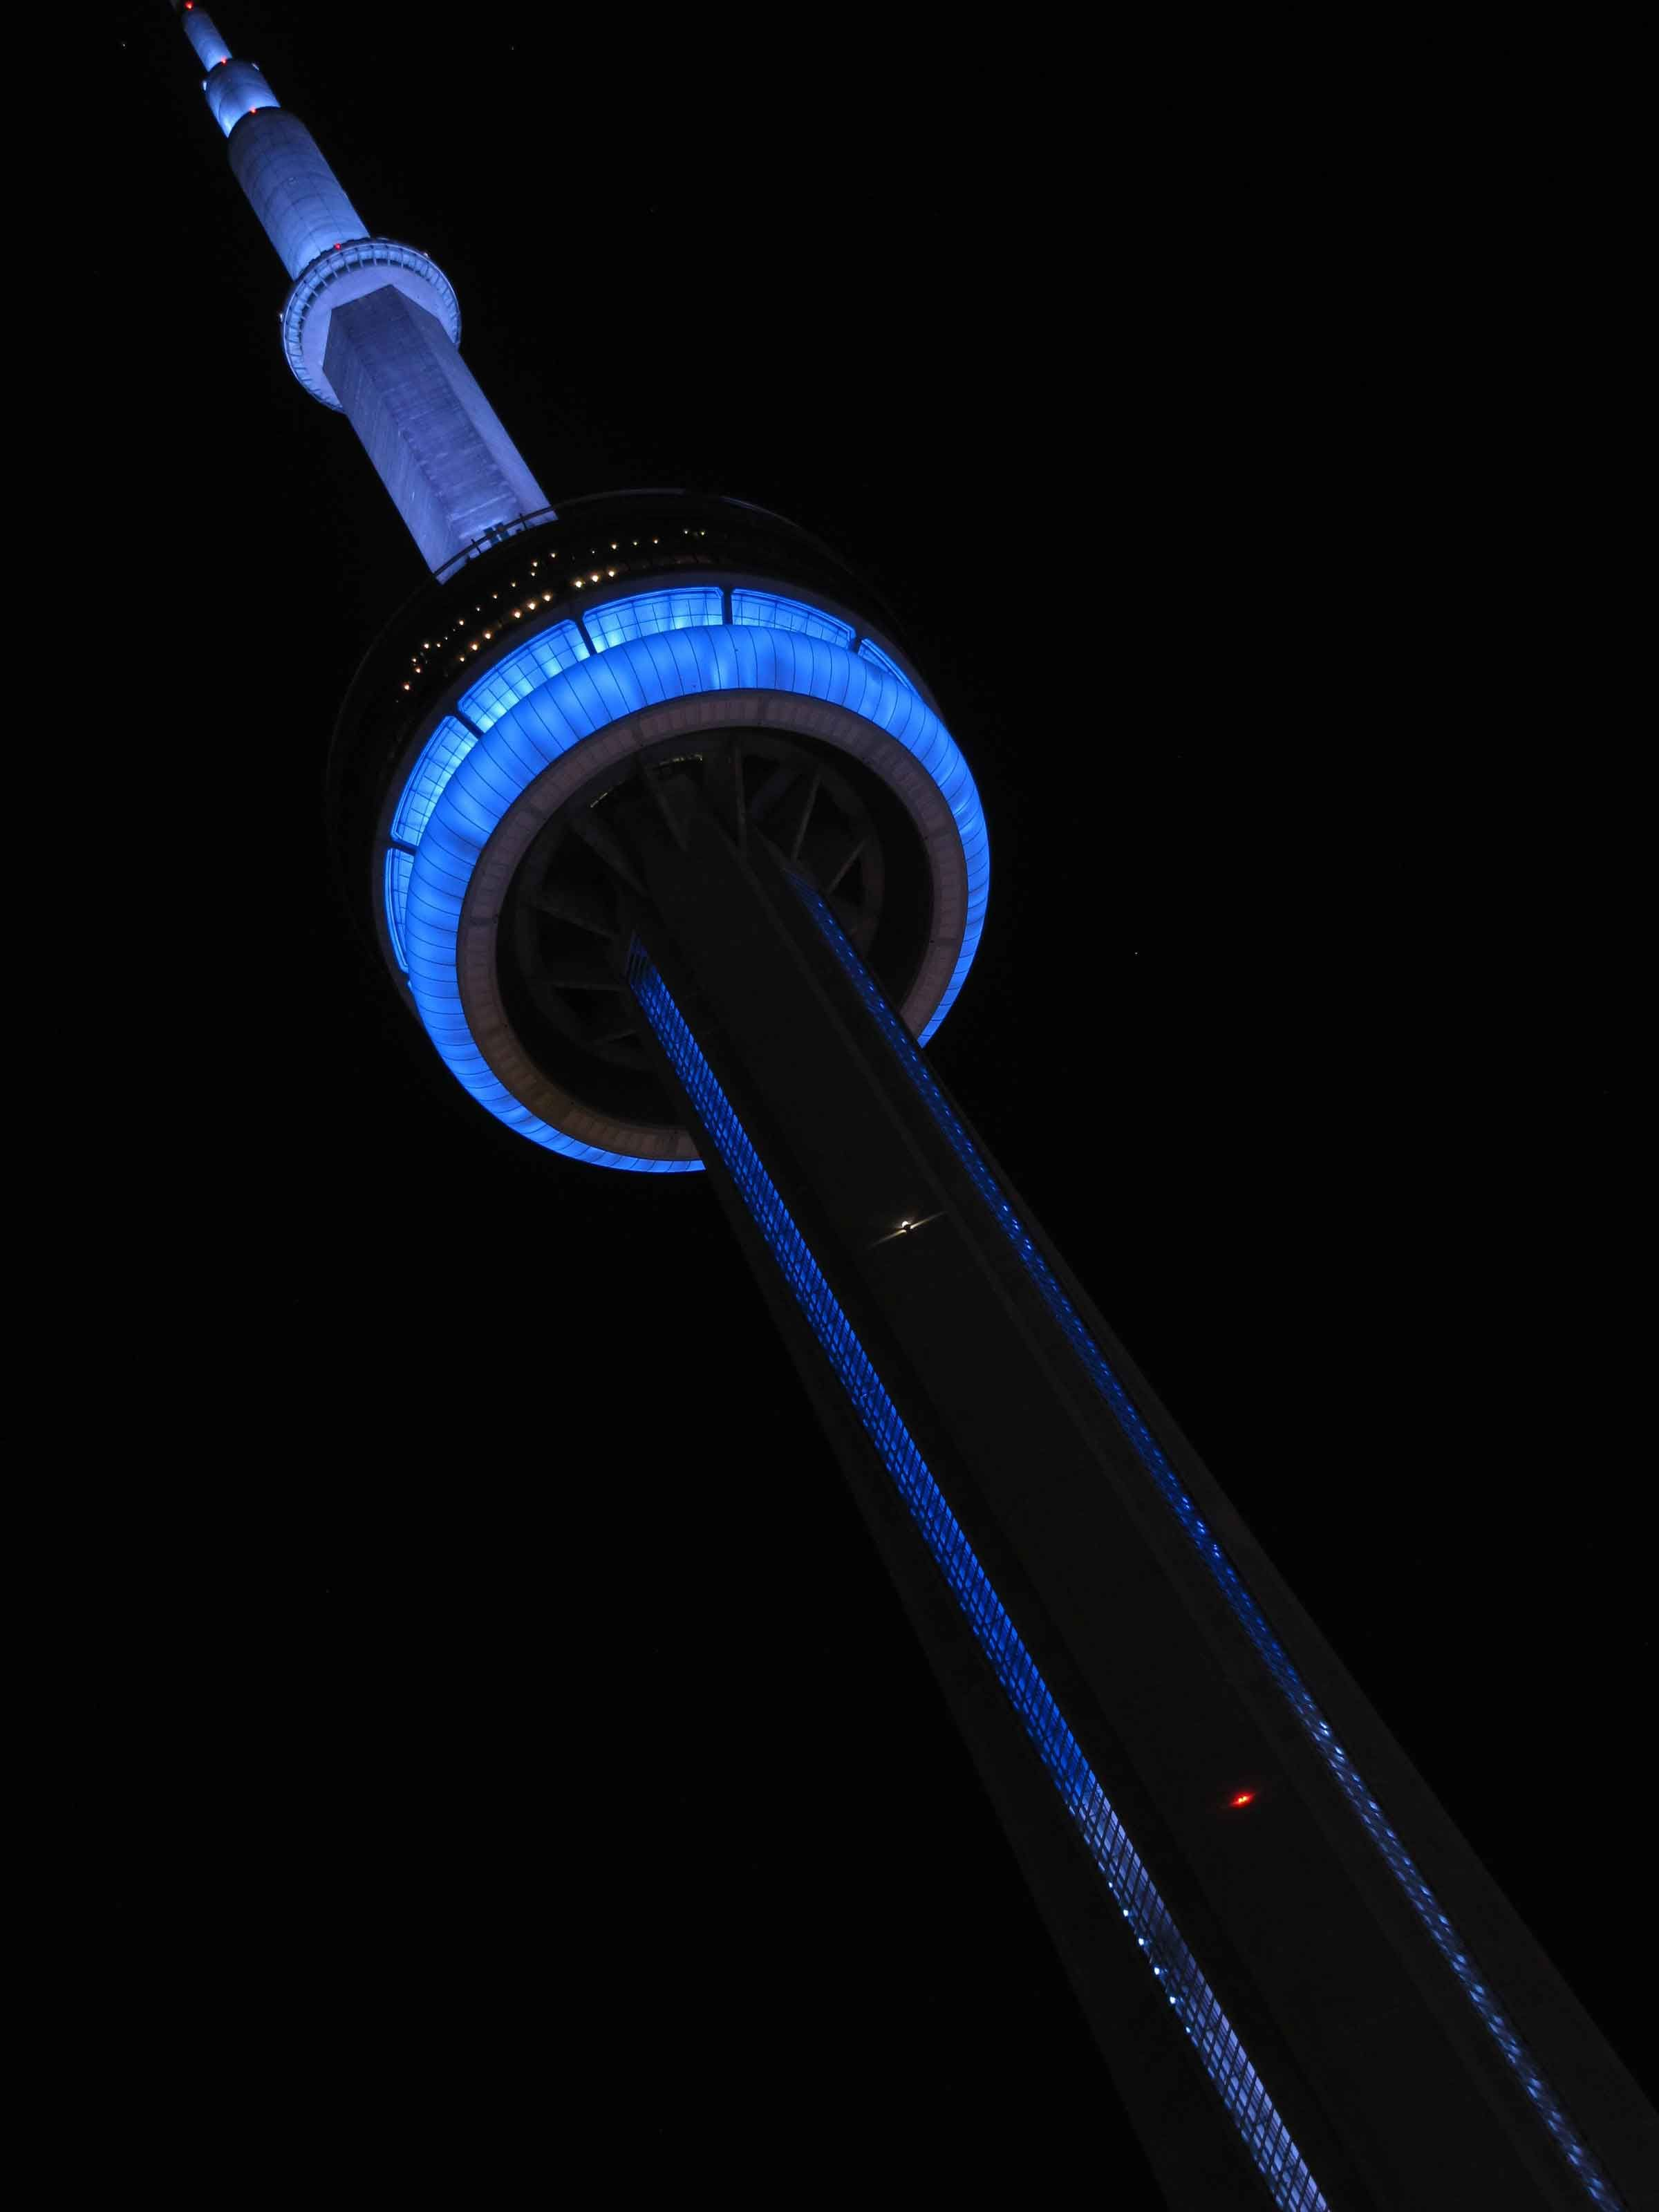 CN Tower lit up Toronto Maple Leafs blue